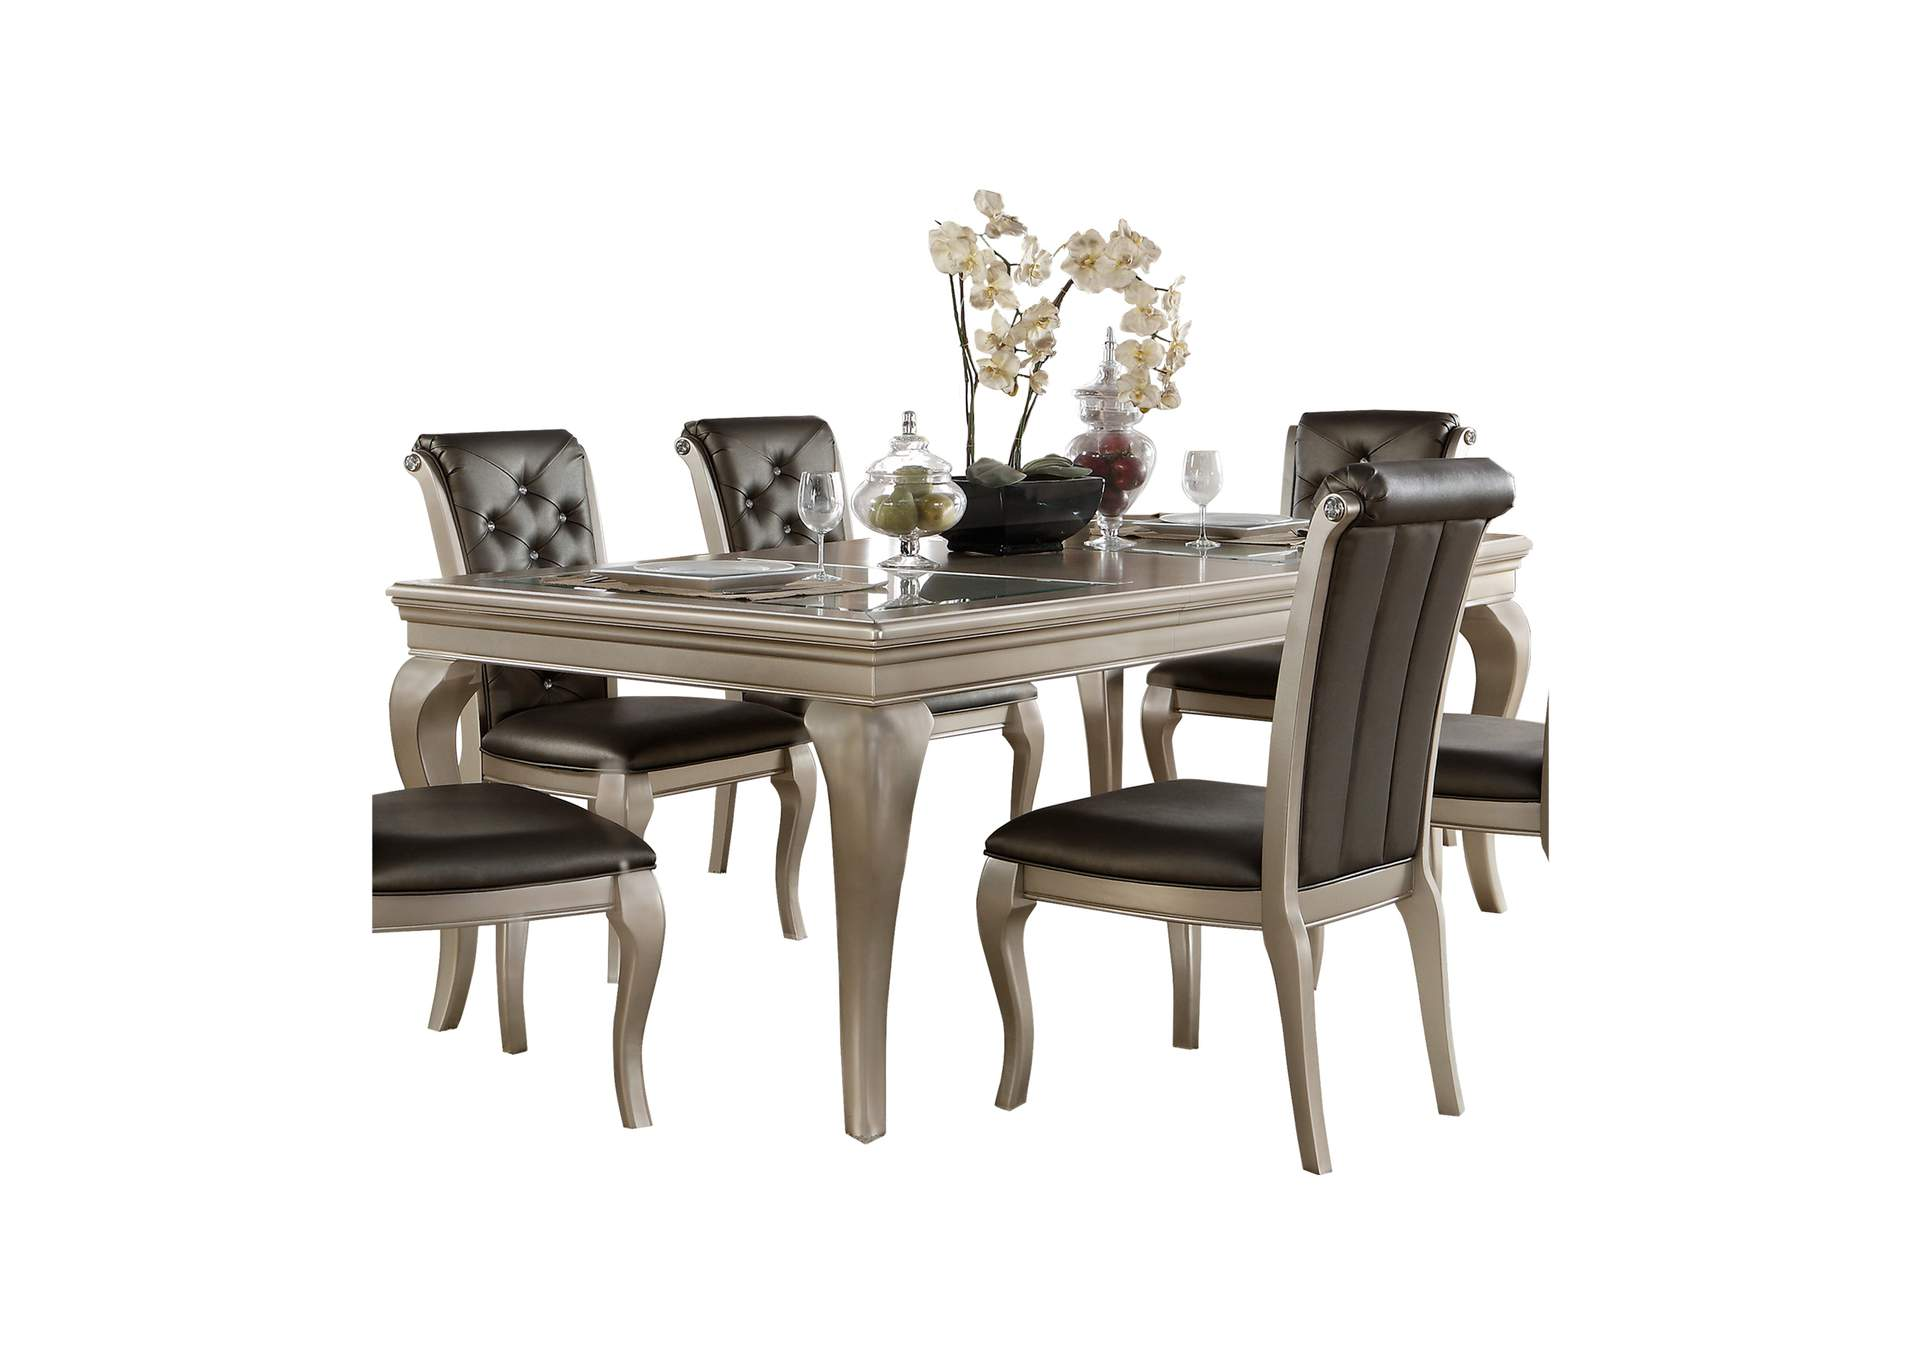 Silver Dining Table,Homelegance